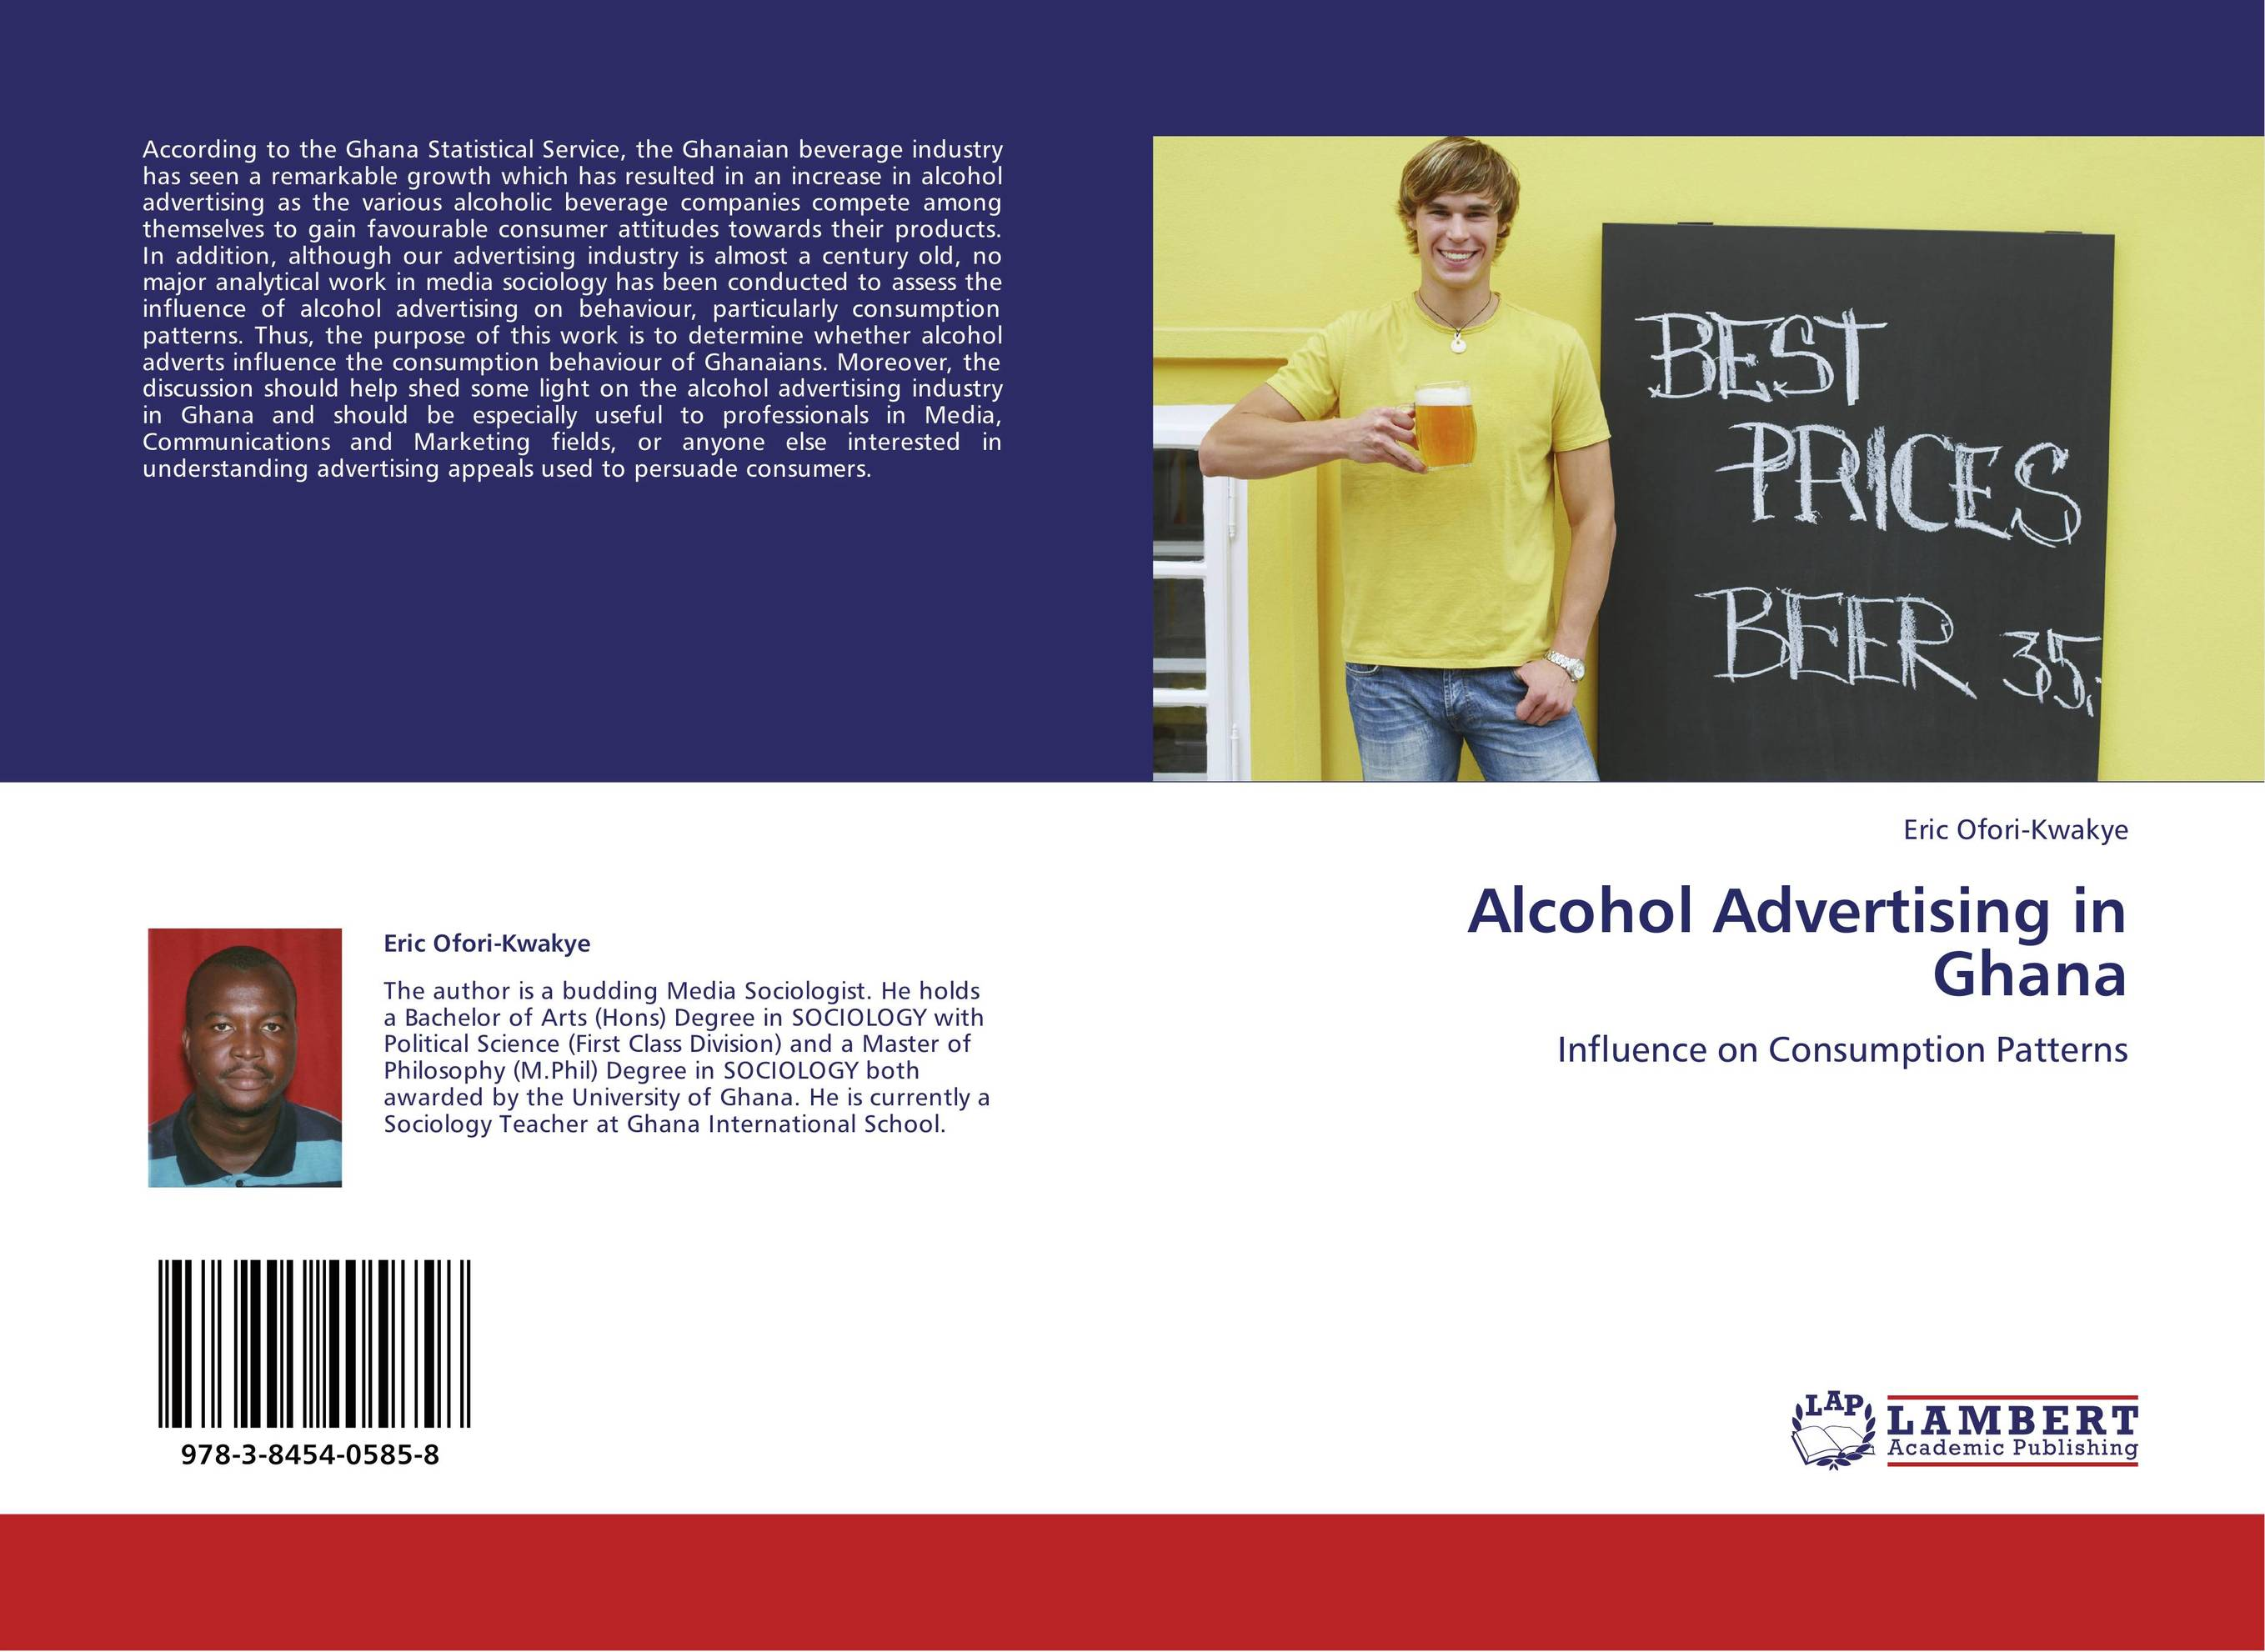 the influence of alcoholic advertisements on The effect of alcohol portrayals and advertising on the drinking behaviour of young people is a matter of much debate we evaluated the relationship between exposure to alcohol advertising, marketing and portrayal on subsequent drinking behaviour in young people by systematic review of cohort (longitudinal) studies studies were identified in.